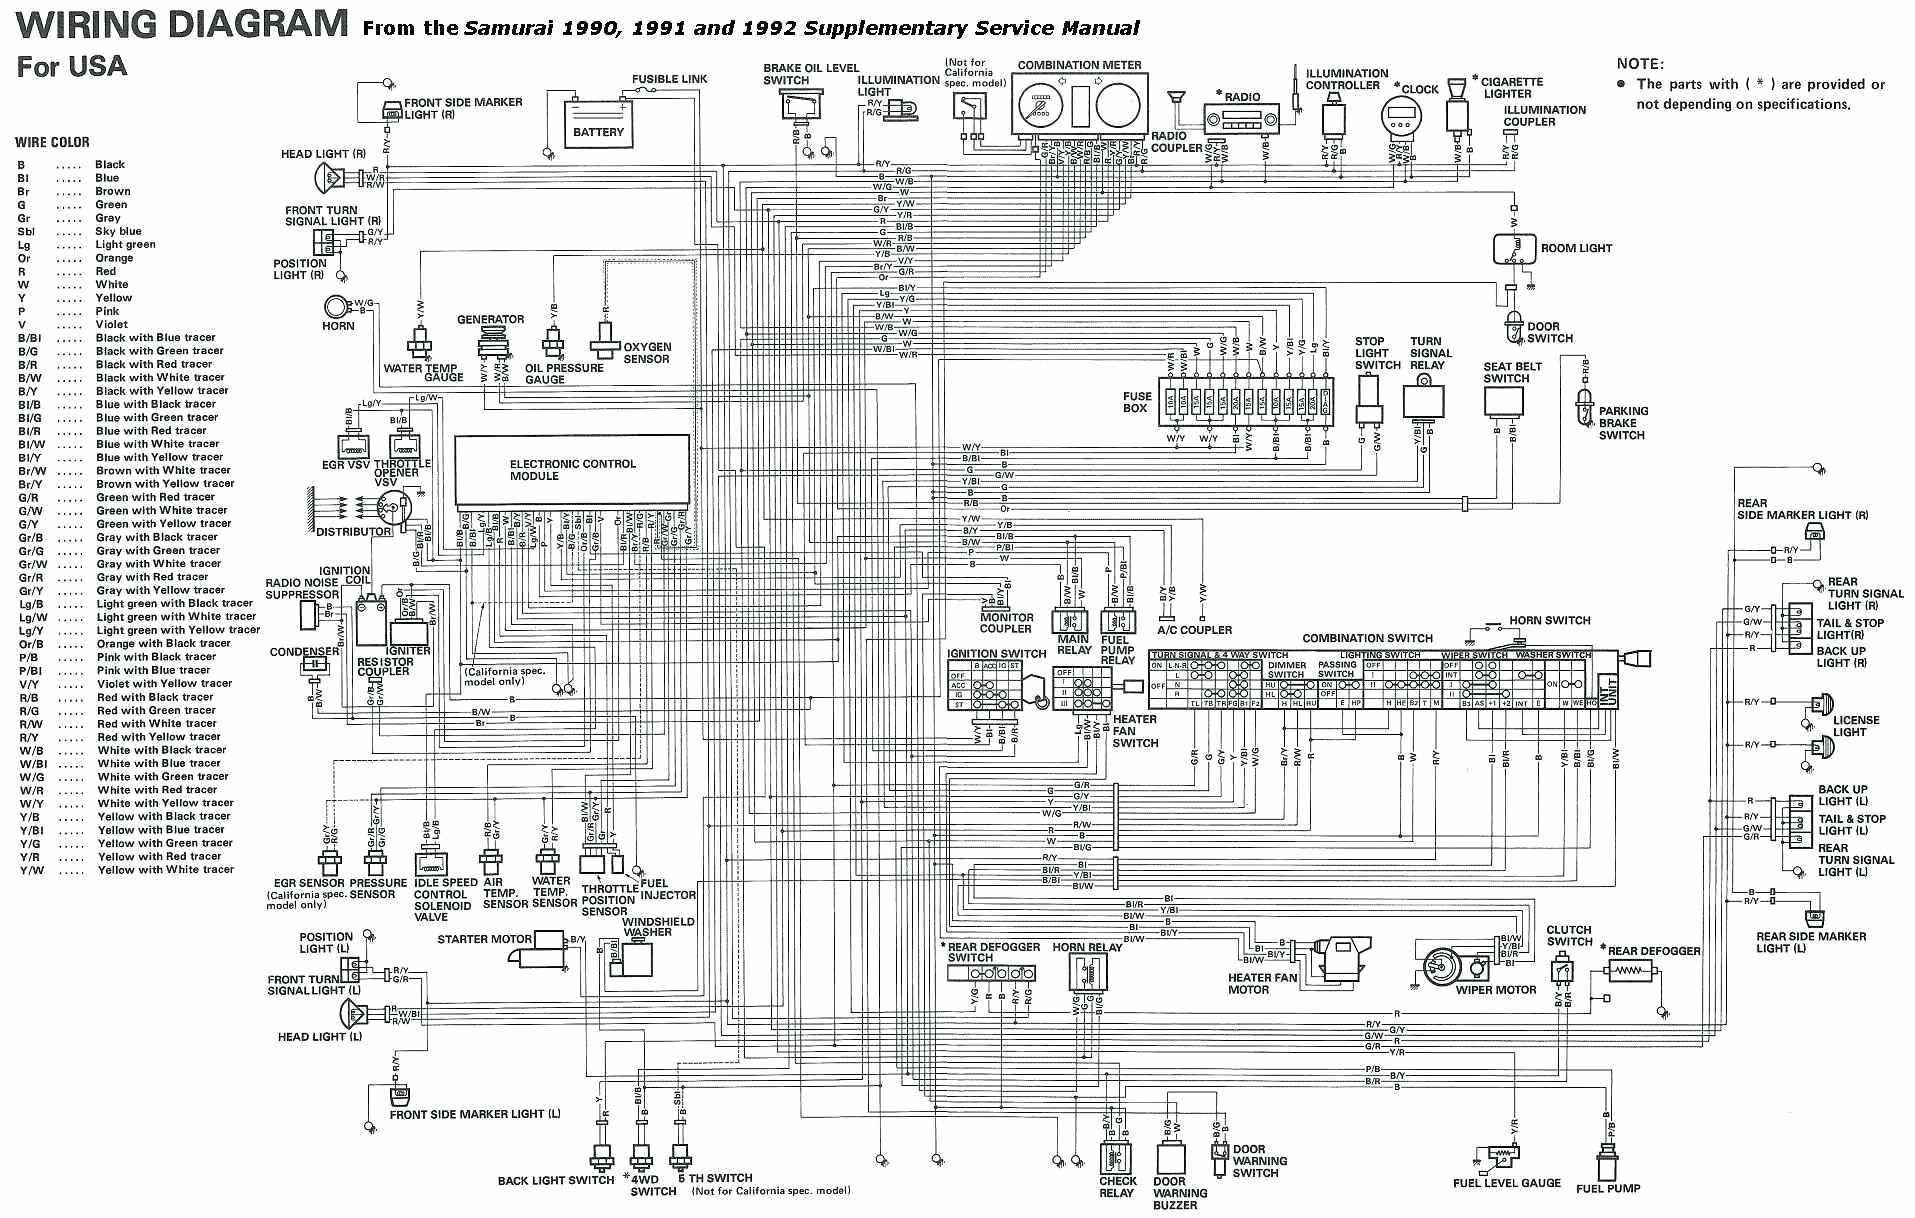 daihatsu transmission diagrams wiring diagram mega daihatsu transmission diagrams [ 1915 x 1218 Pixel ]